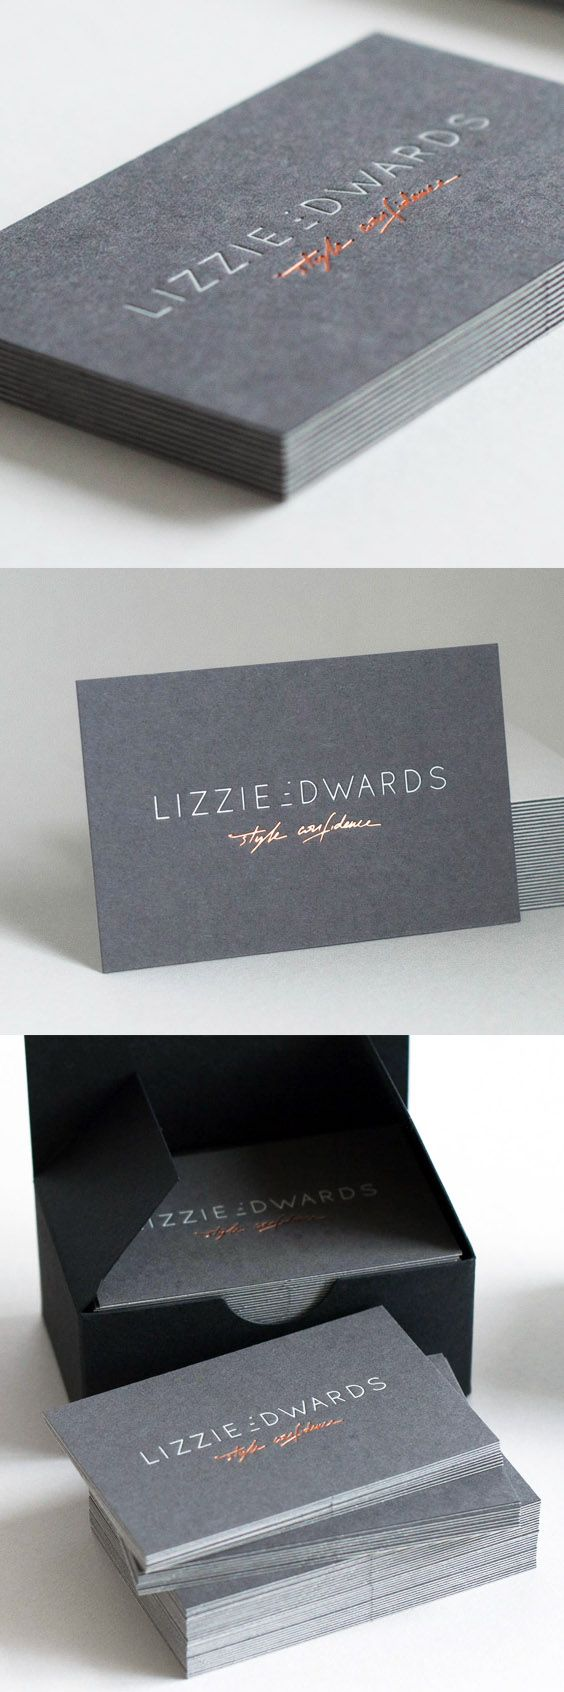 Hot foil stamping business cards printed on colorplan paper side a hot foil stamping business cards printed on colorplan paper side a 270gsm colorplan pale grey 889 dark grey foil 6641 copper foil side b 27 reheart Image collections